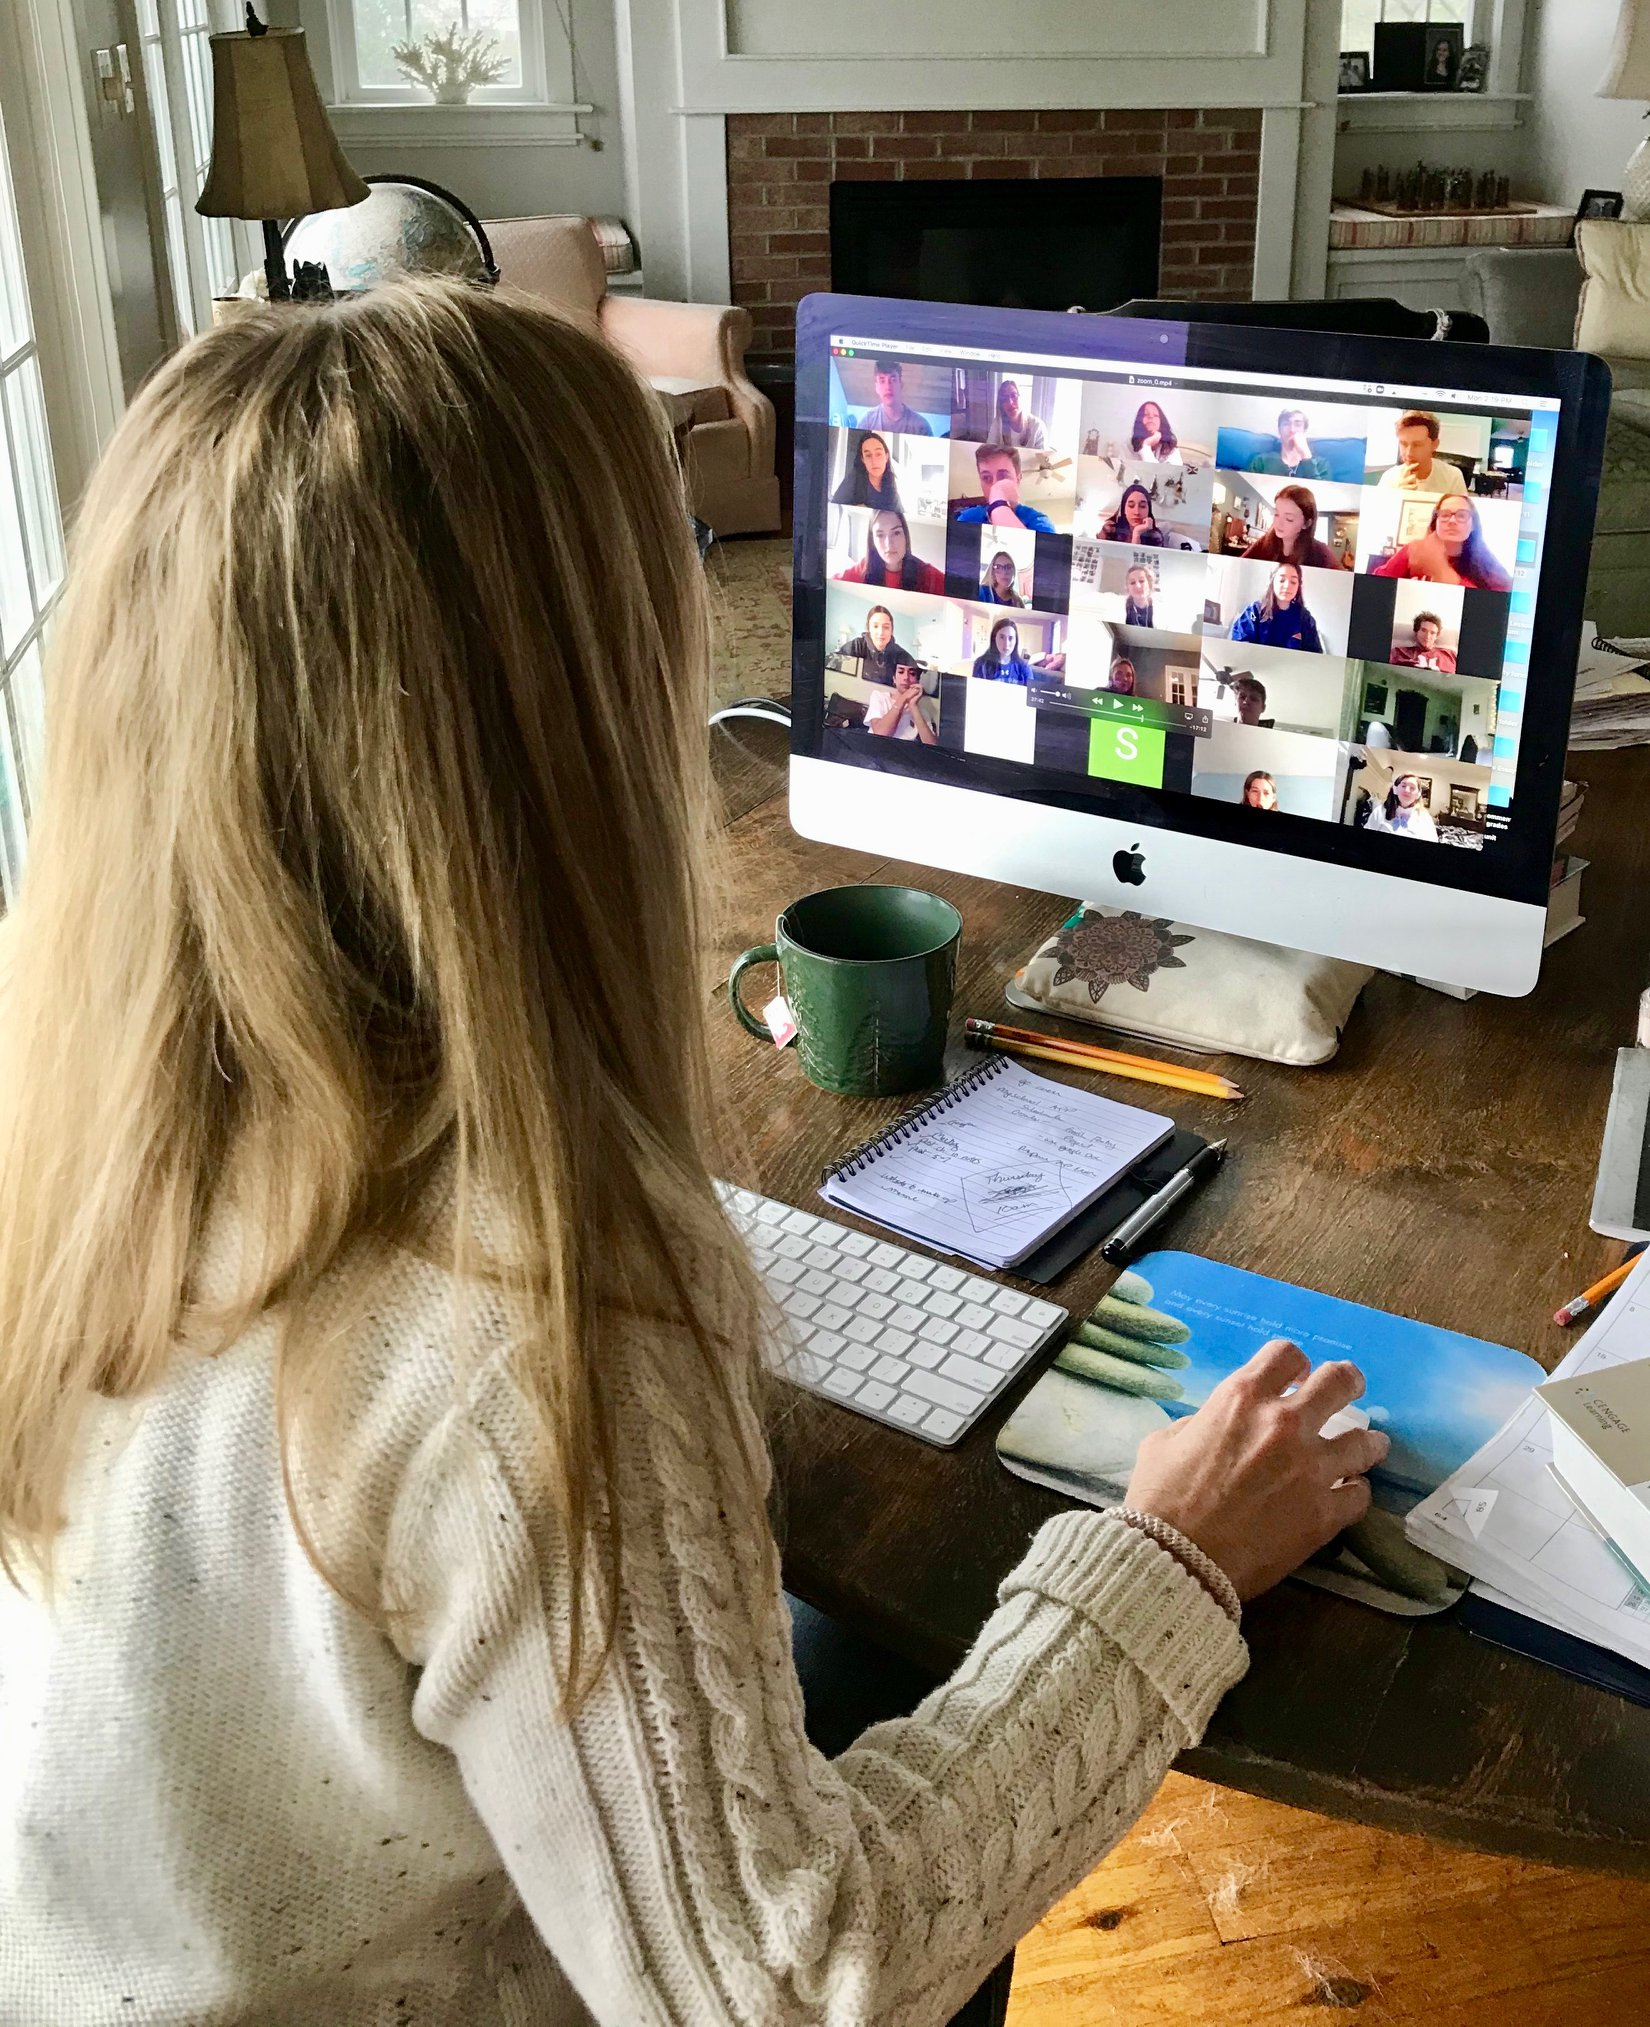 School Using Technology, Teamwork To Continue Academic Learning For Students